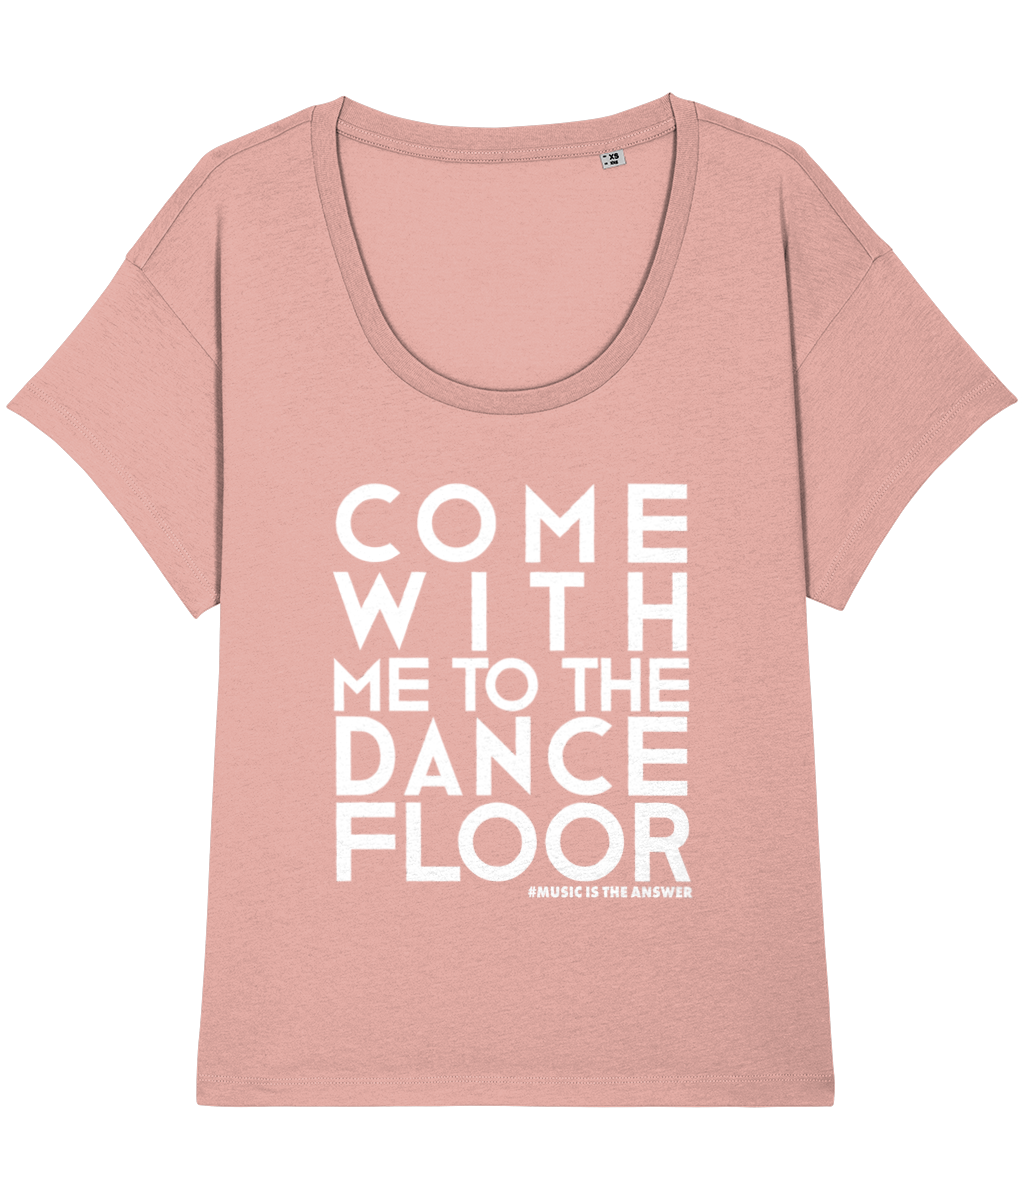 Women's Chiller T-shirt Dancefloor